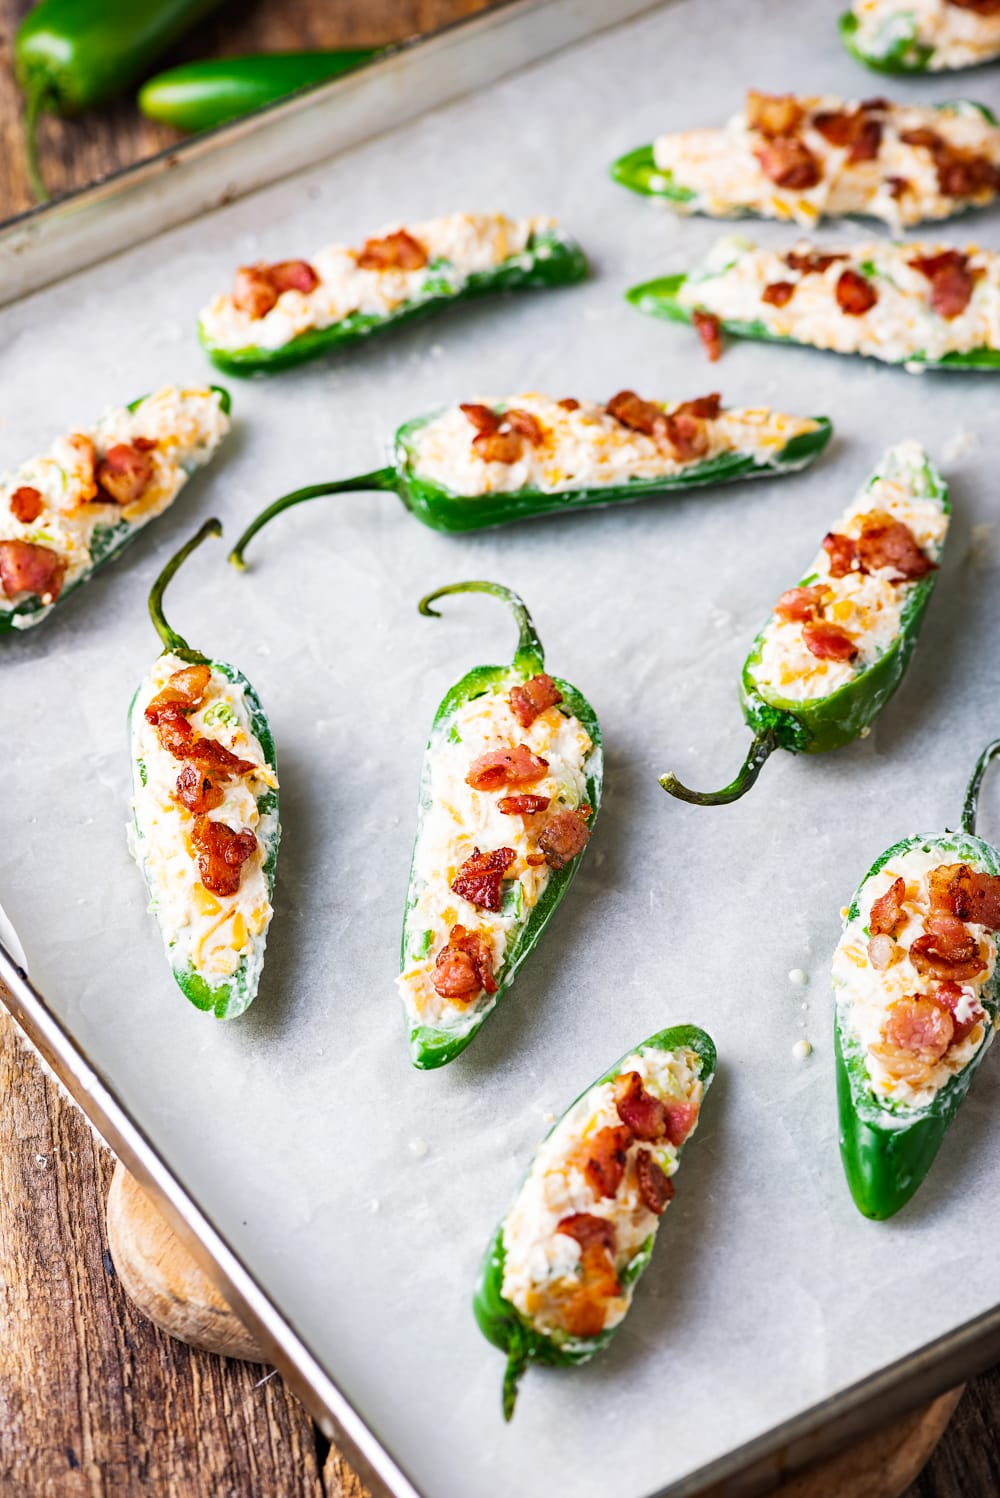 A baking sheet of uncooked jalapenos that have been stuffed with cream cheese and bacon.